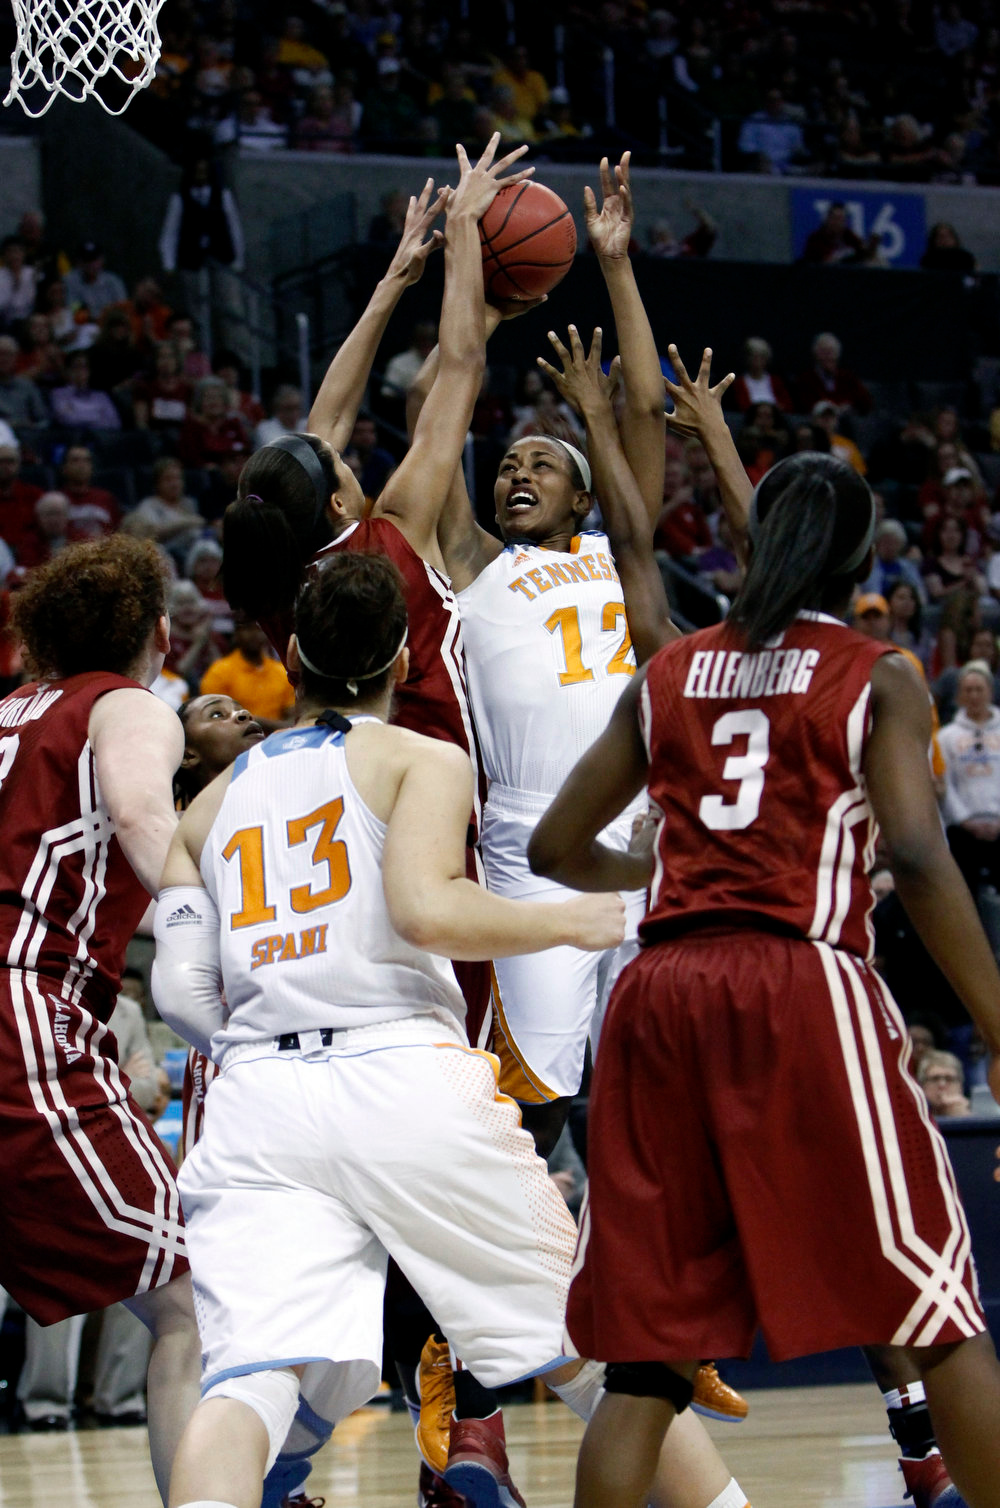 Description of . Tennessee's Bashaara Graves (12) shoots against Oklahoma in the second half of a regional semifinal game in the women's NCAA college basketball tournament in Oklahoma City, Sunday, March 31, 2013.  Tennessee won 74-59.  (AP Photo/Alonzo Adams)